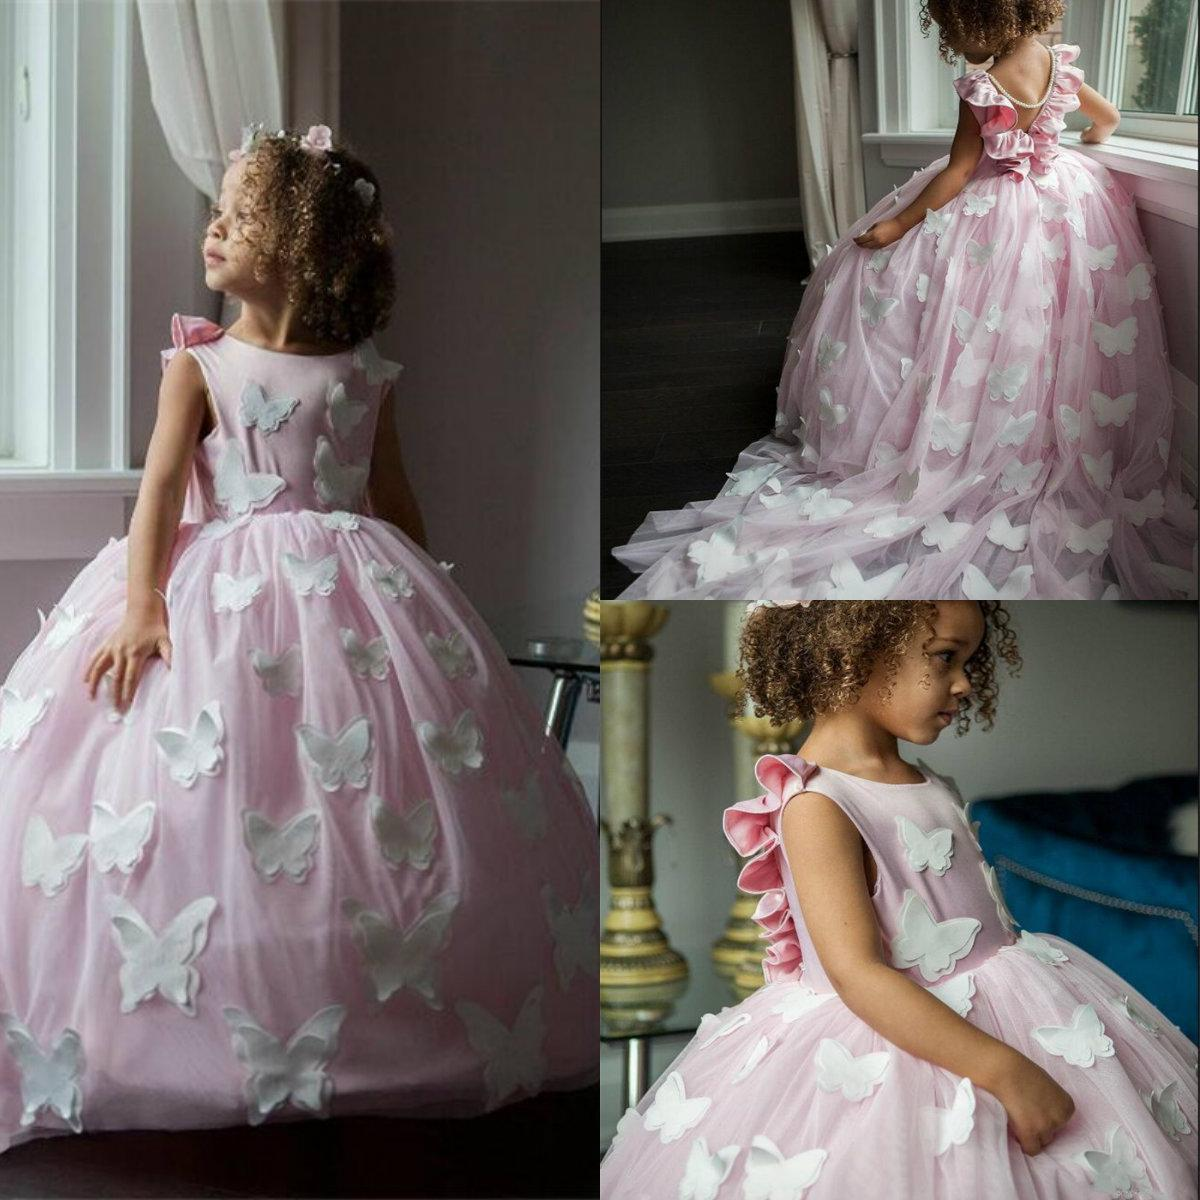 2020 Cute Flower Girl Dresses Jewel Neck Butterfly Appliqued Sleeveless Girl Pageant Gowns Backless Ruffle Sweep Train Birthday Gowns